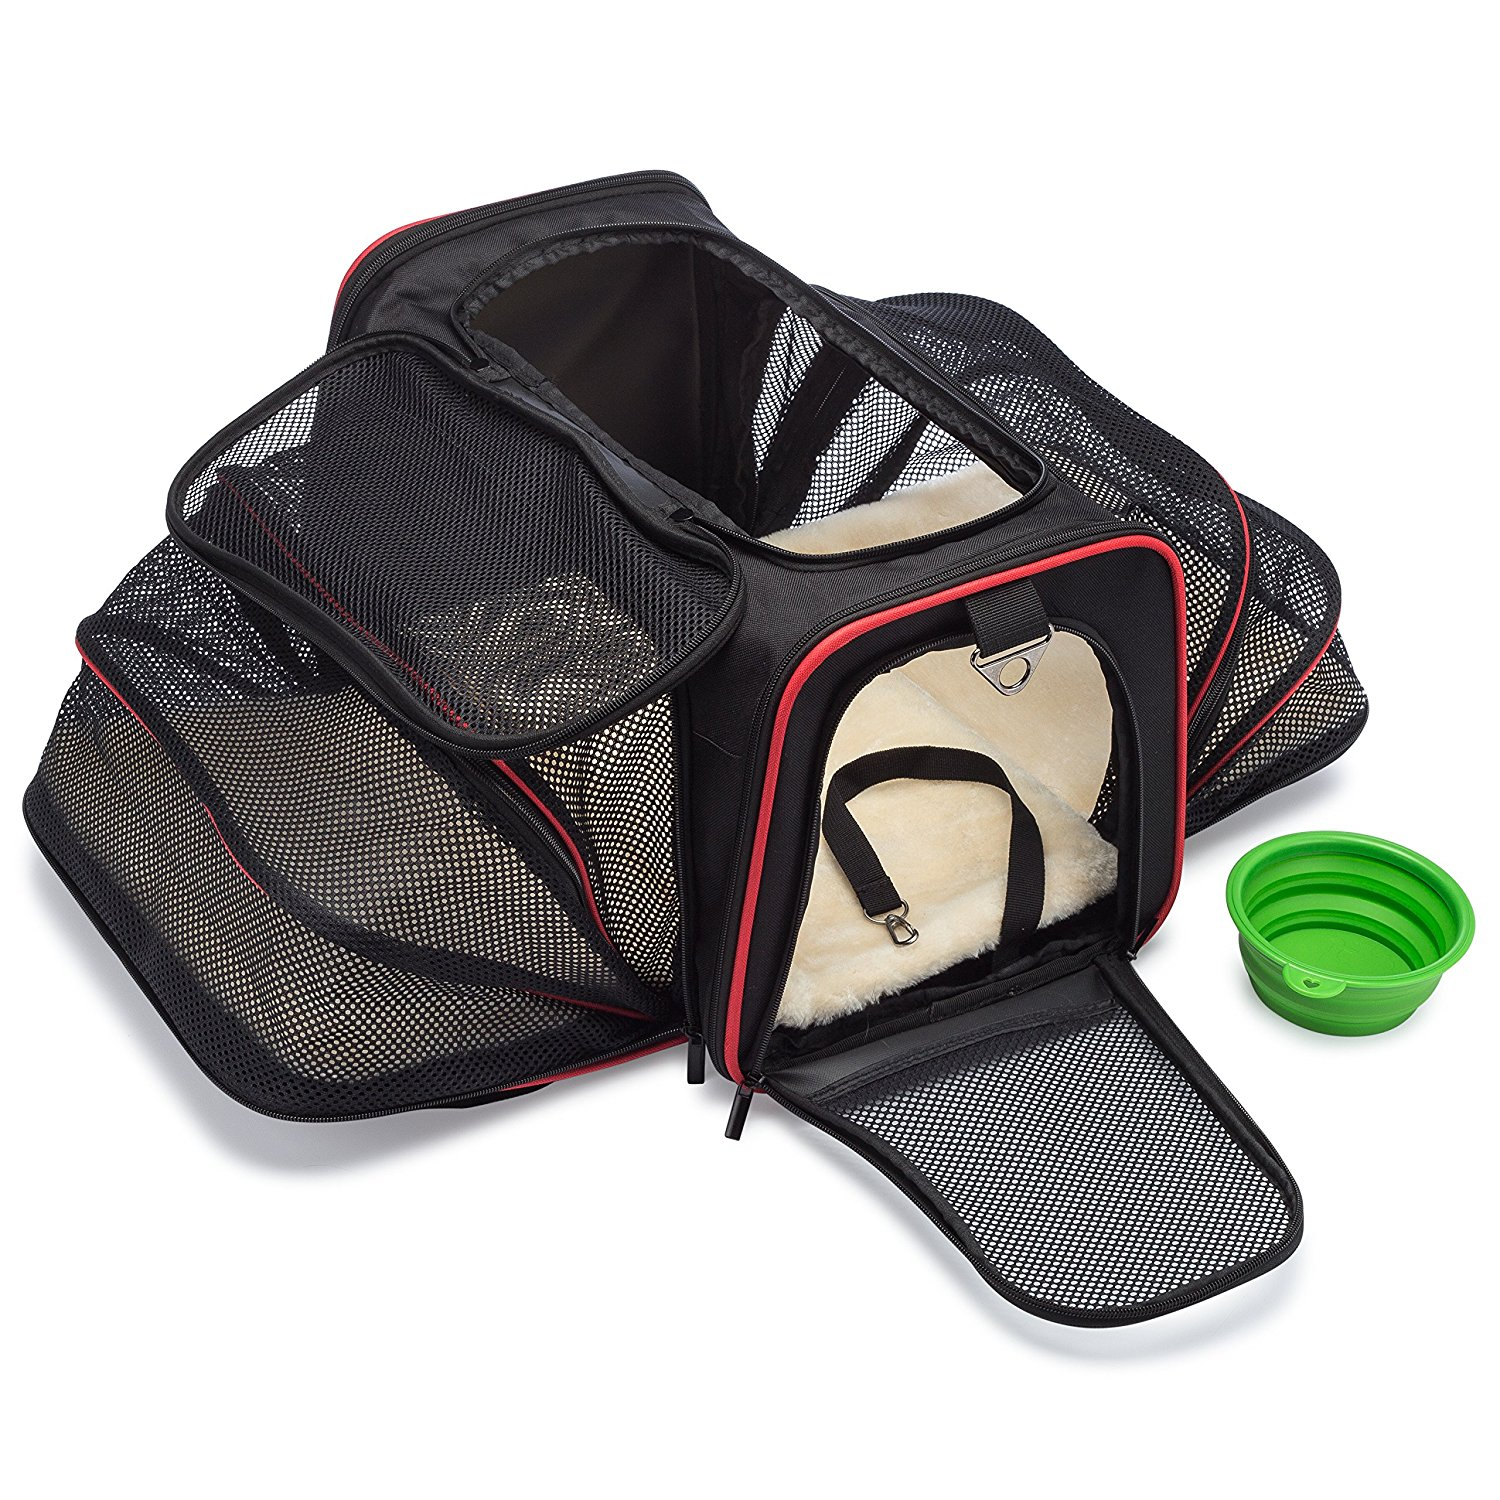 b7fe416d46c Get Quotations · mypal Expandable Soft Pet Carrier, Airline Approved Carrier  for Easy Carry On Luggage. for